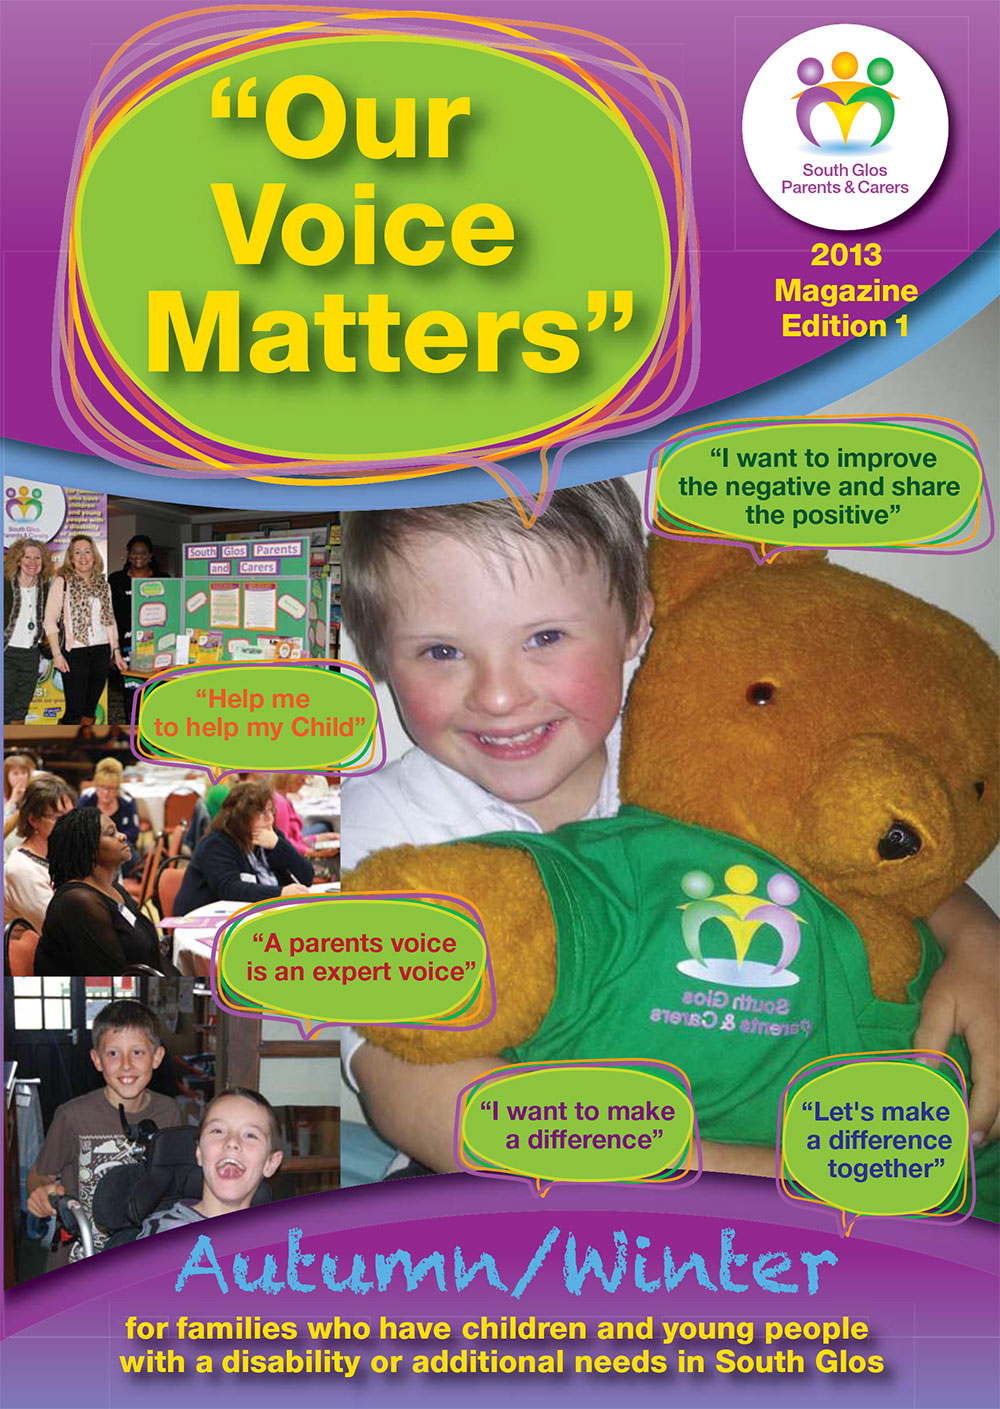 Our Voice Matters Magazine Edition 1